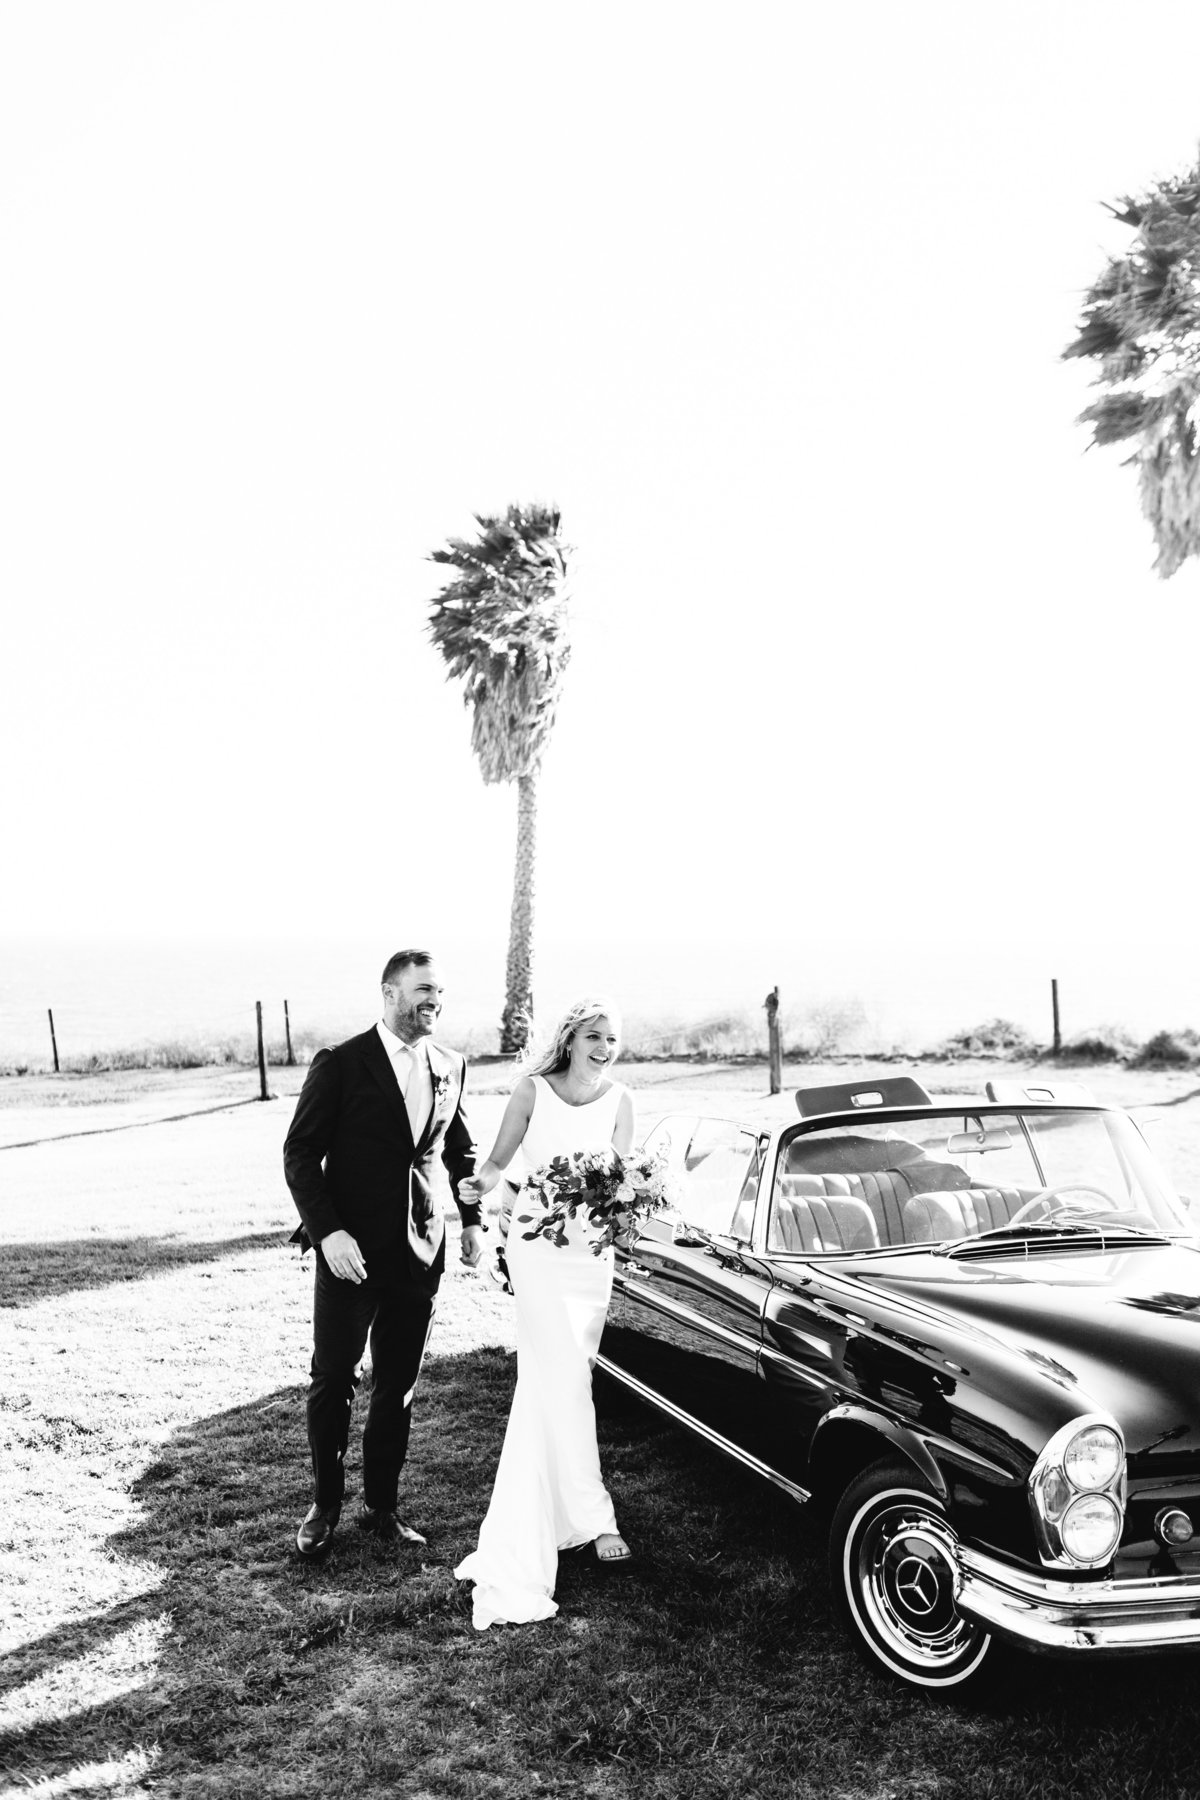 Best California Wedding Photographer-Jodee Debes Photography-124